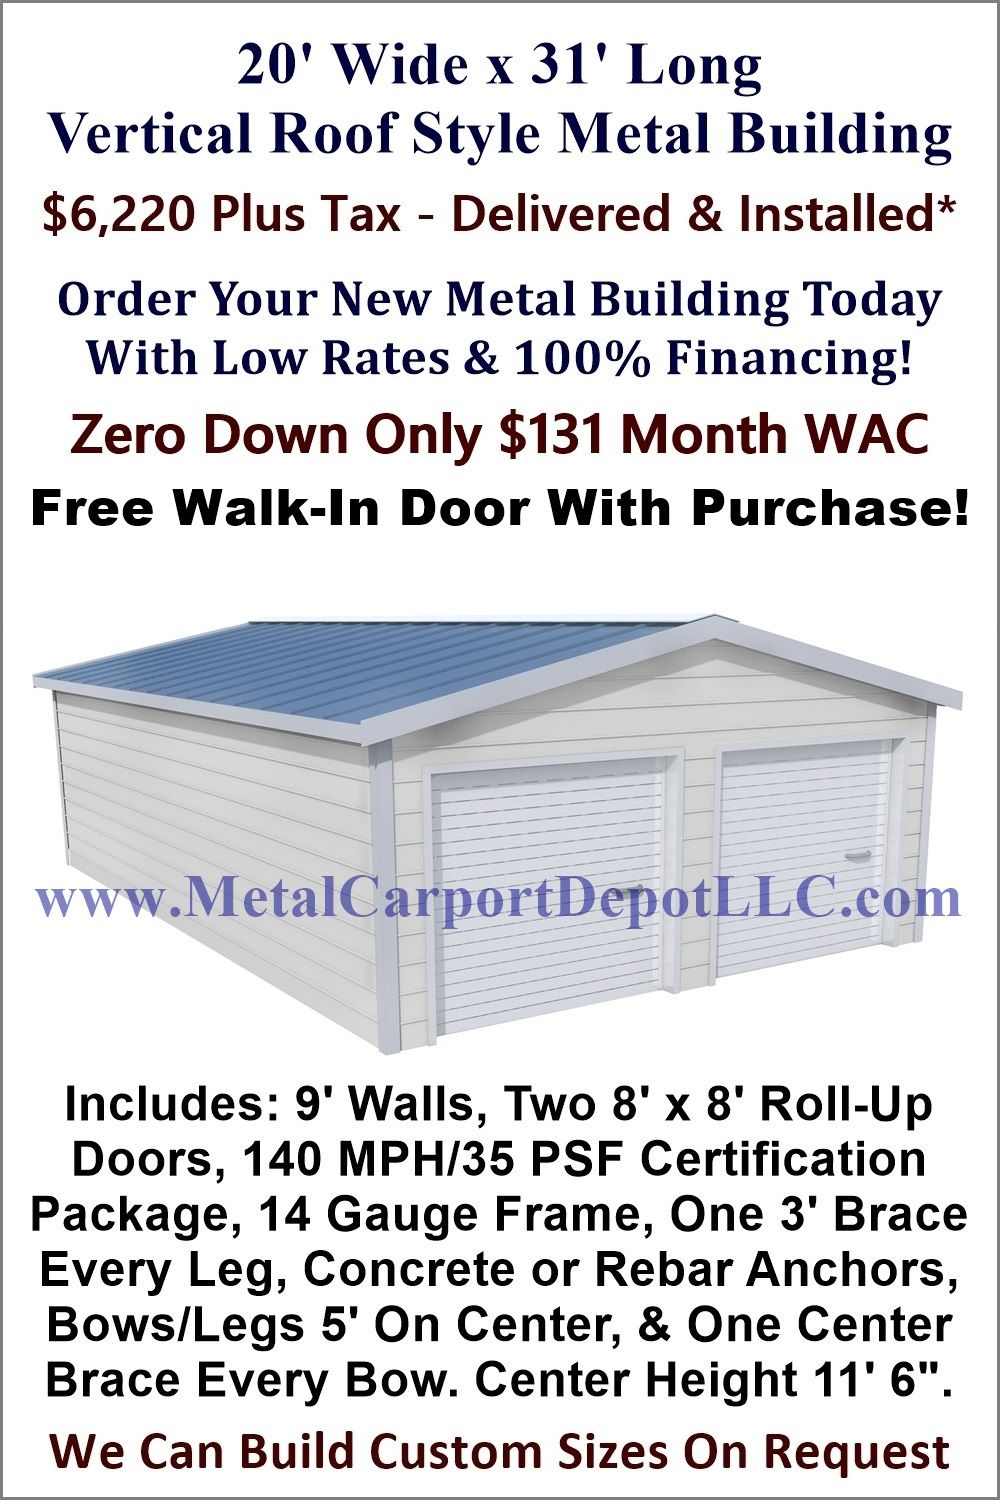 20' x 31' Vertical Roof Style Metal Building. Price 6,220